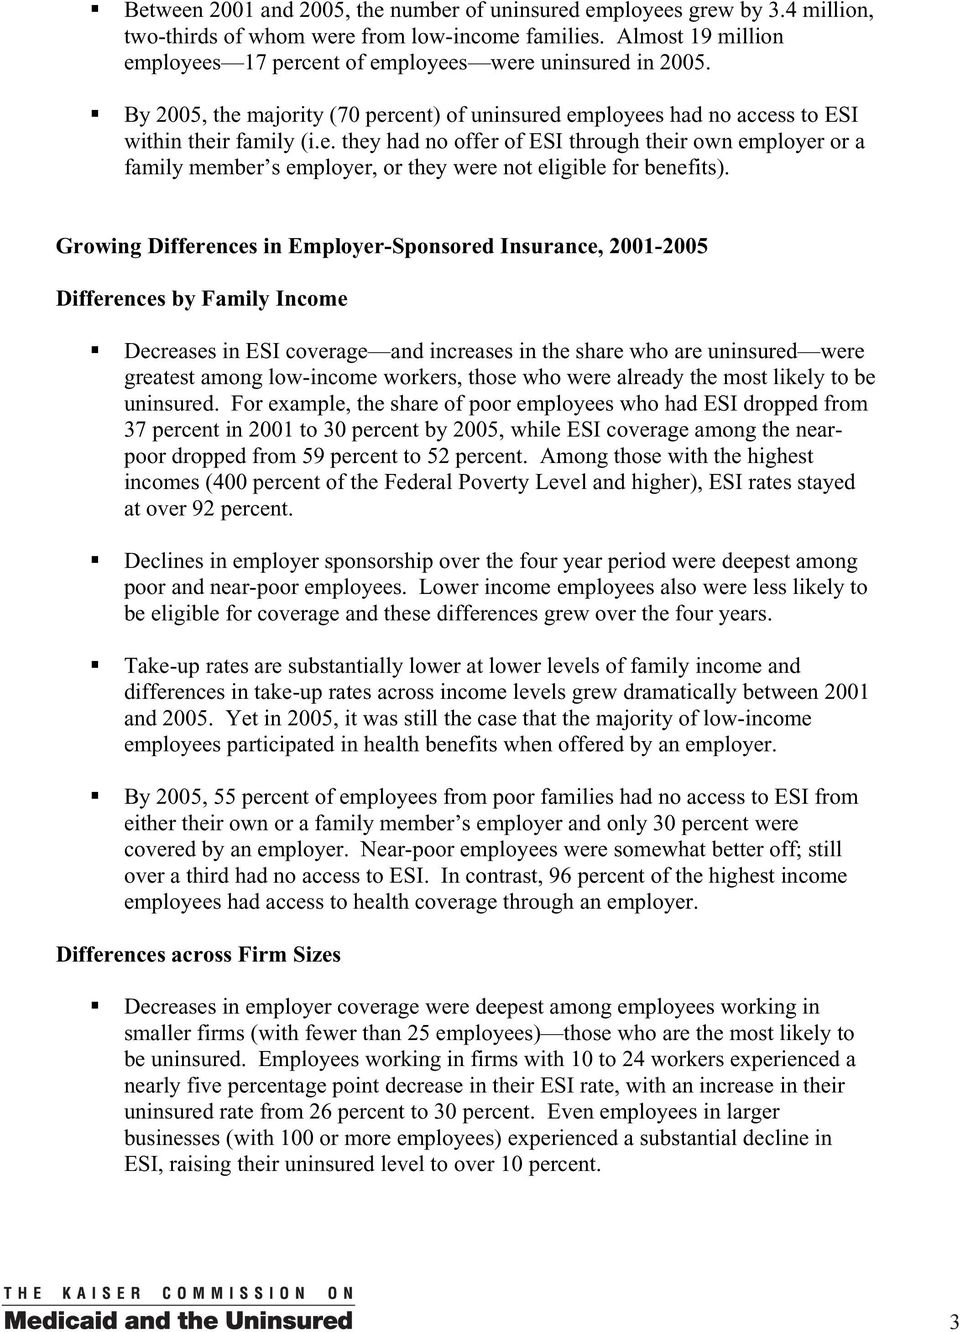 Growing Differences in Employer-Sponsored Insurance, 2001-2005 Differences by Family Income Decreases in ESI coverage and increases in the share who are uninsured were greatest among low-income